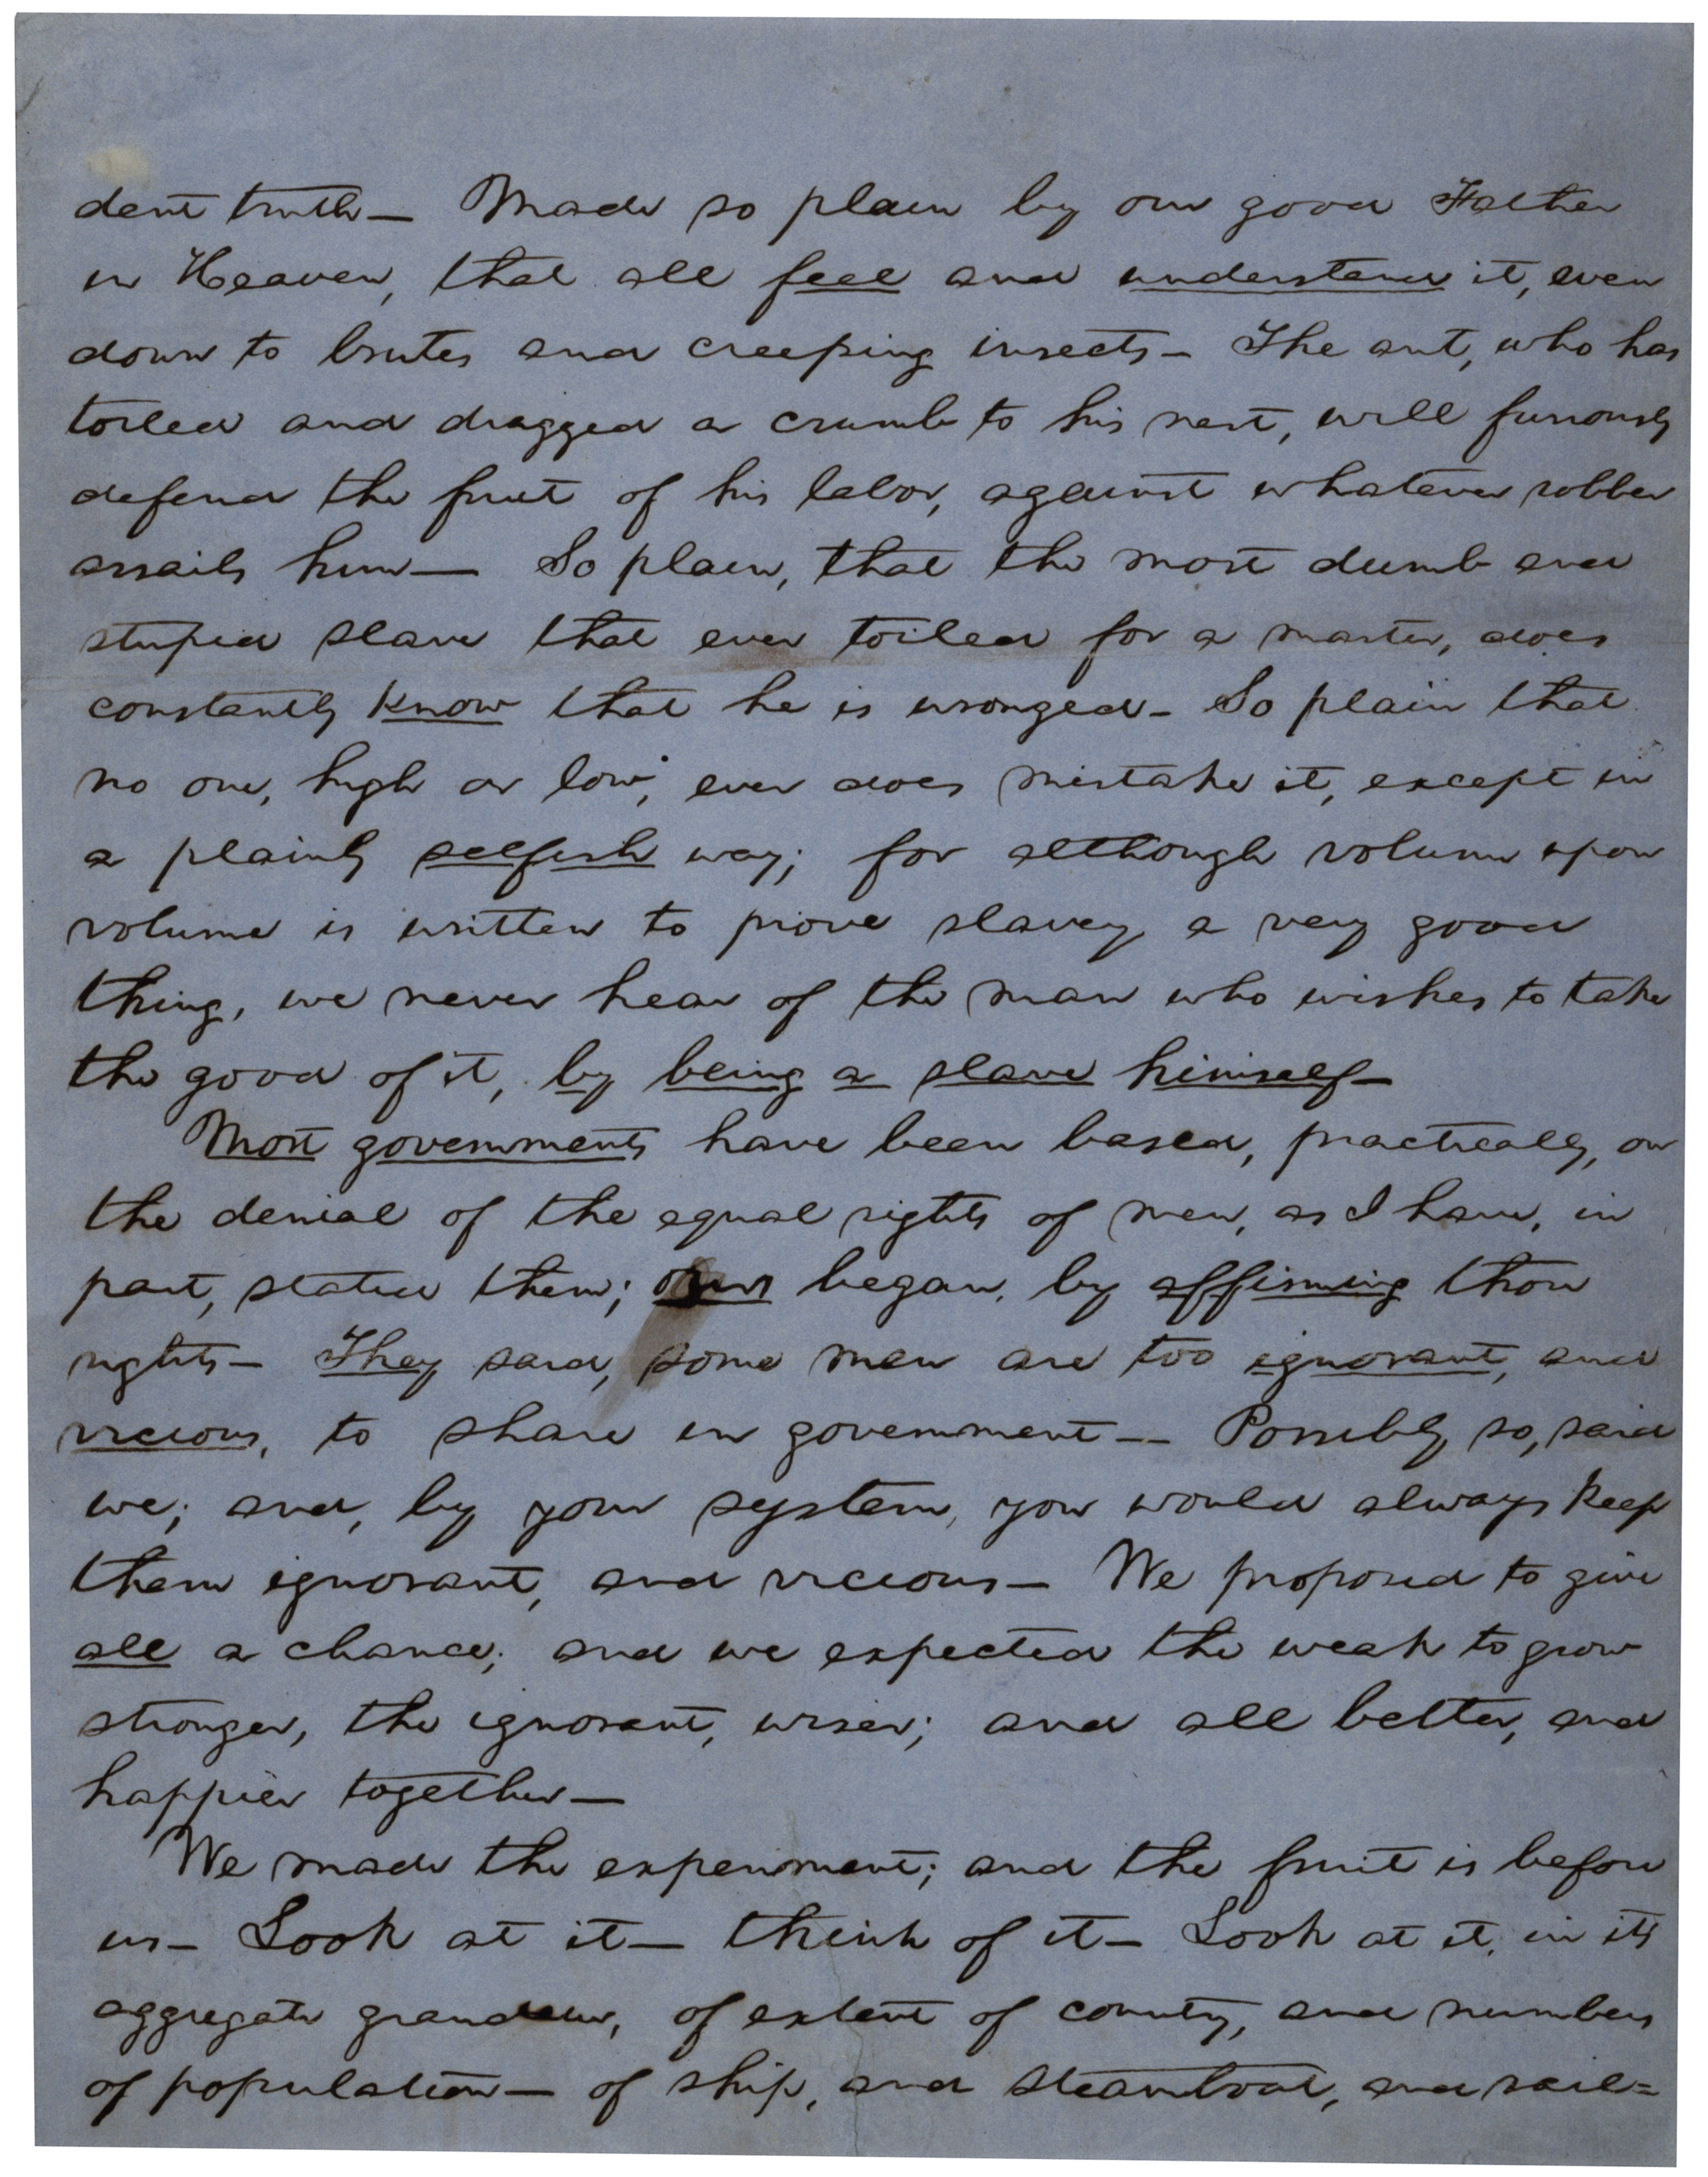 sat essay abraham lincoln More abraham lincoln essay topics the first essay titled, 'the second american revolution', mainly discusses how the civil war had a dramatic.